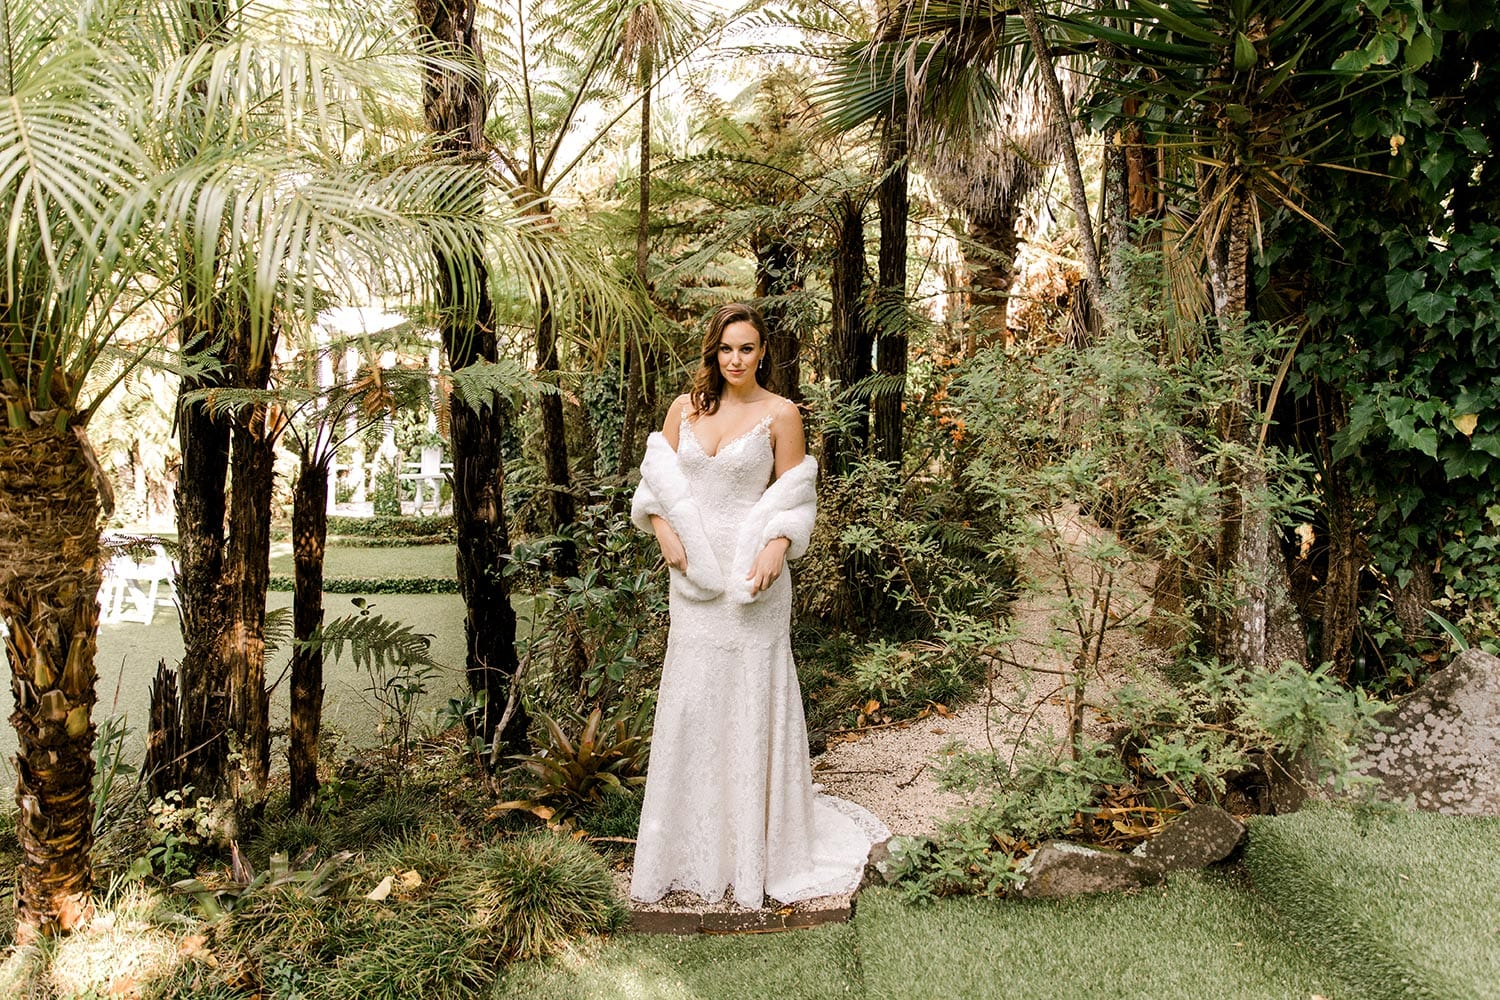 Dakota Wedding Dress from Vinka Design. This full-lace wedding dress is form fitting, sculpting the body beautifully. Delicate beaded lace flowers are hand-appliqued up the sheer nude tulle straps on both the front & back. Landscape of full length dress worn with snug, photographed at Tui Hills by Emmaline Photography.